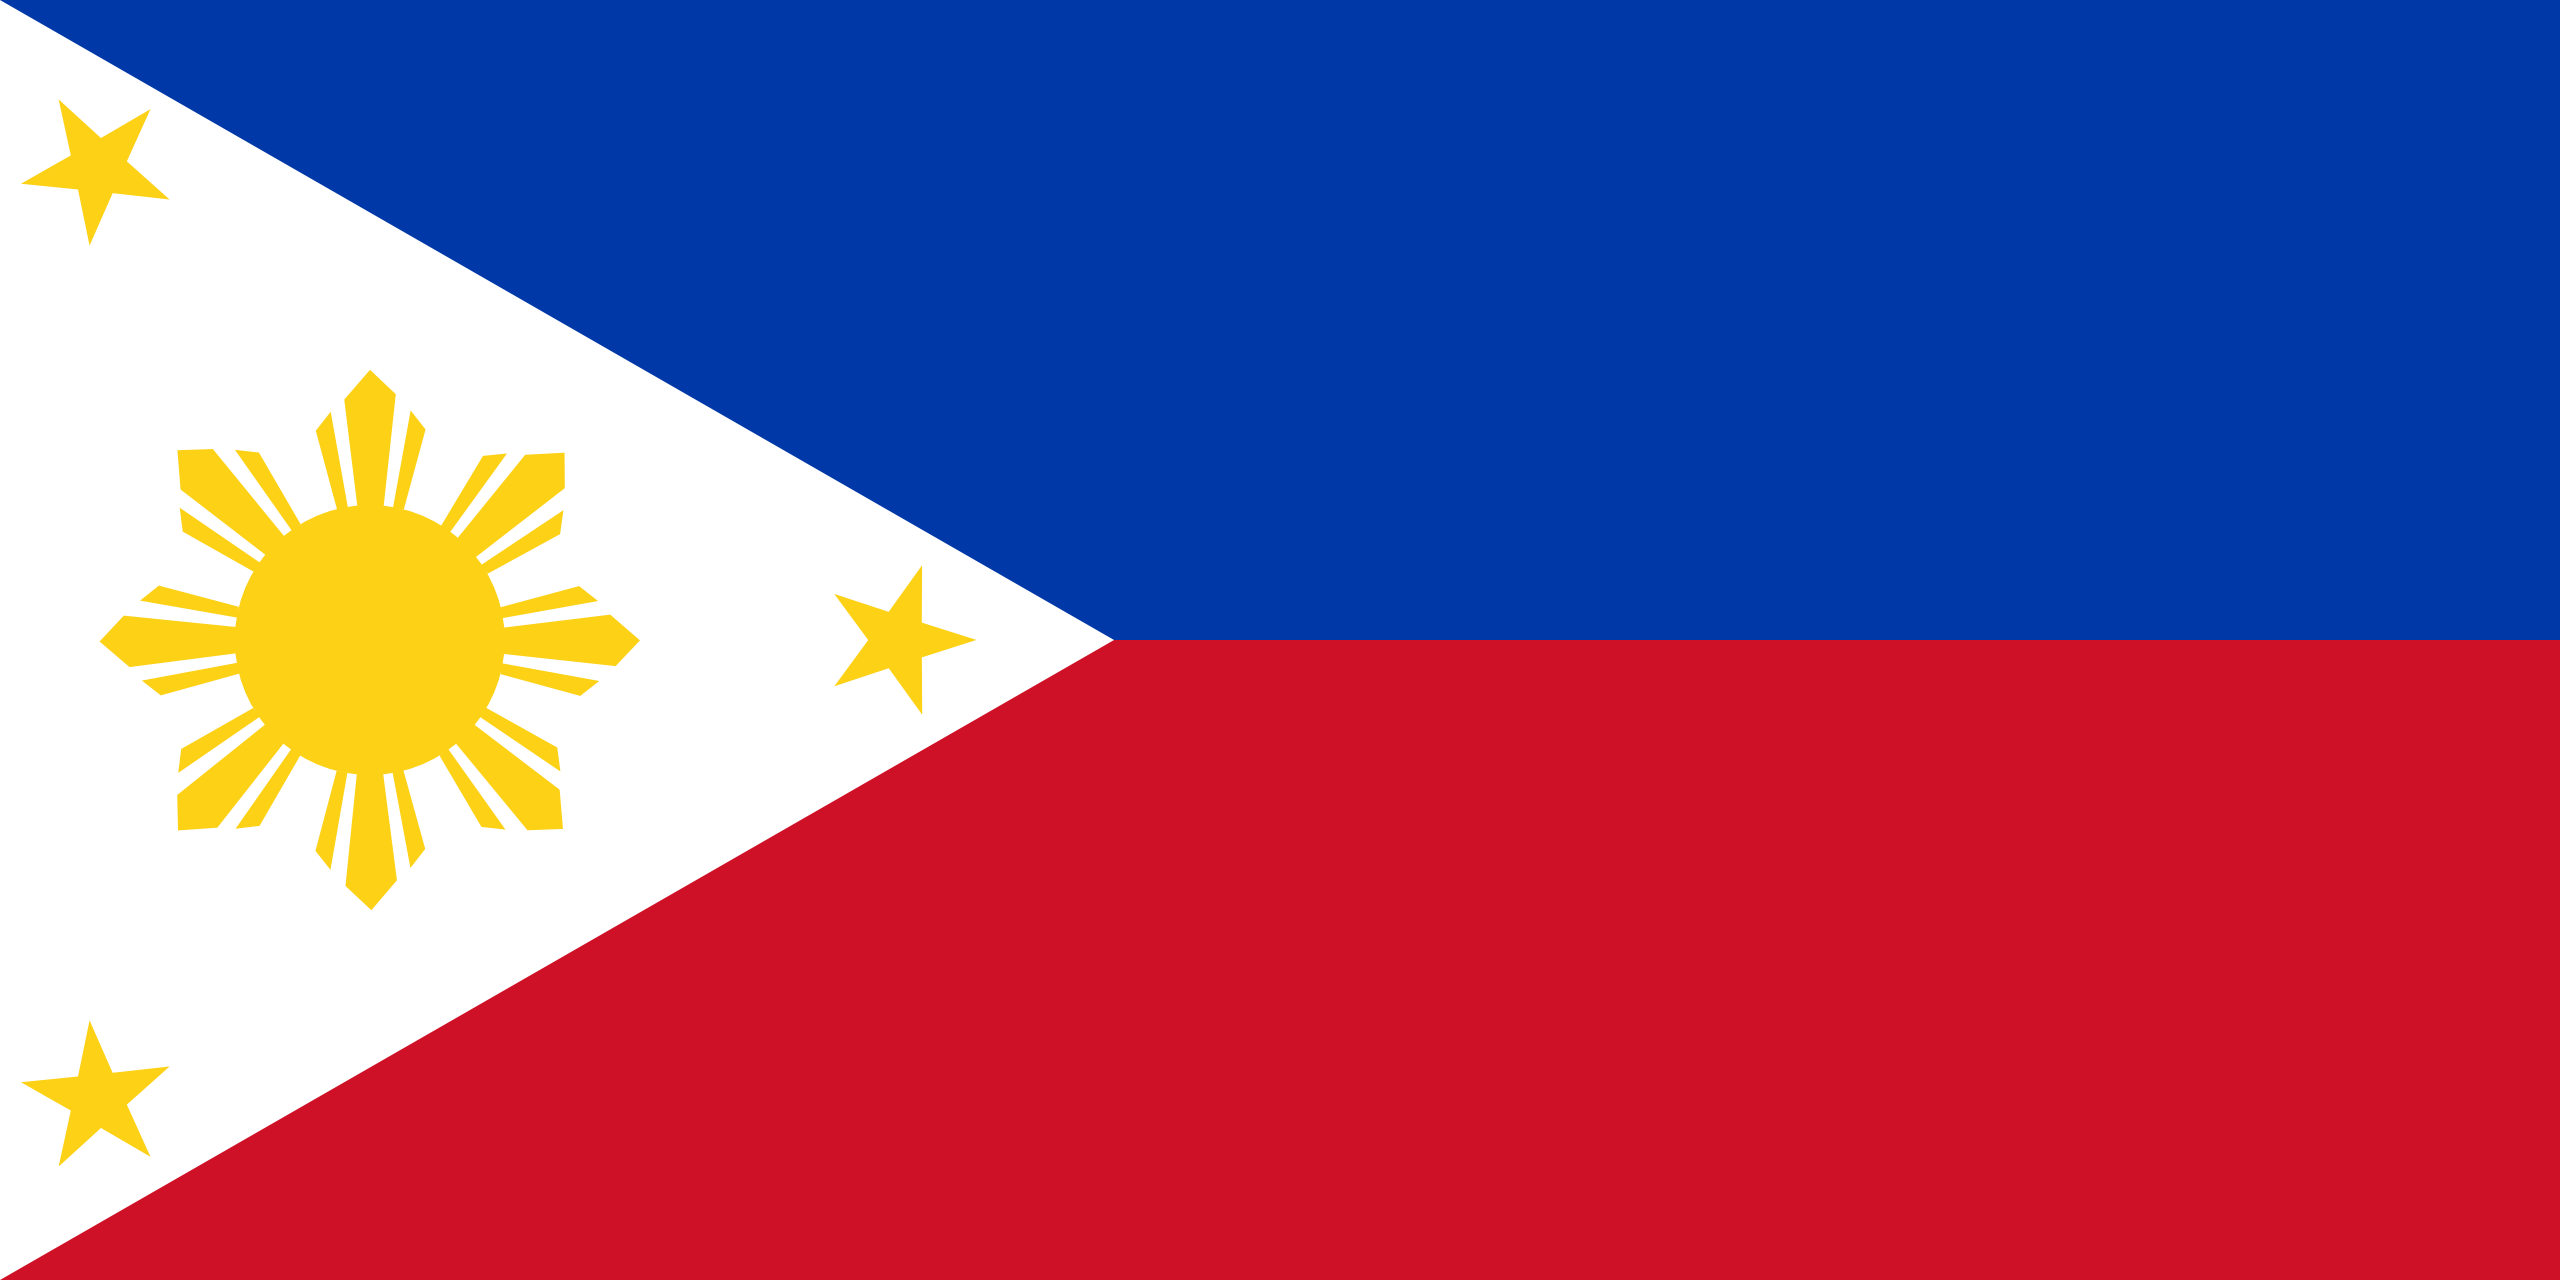 https://aerospaceexport.com/wp-content/uploads/2019/10/philippines.png